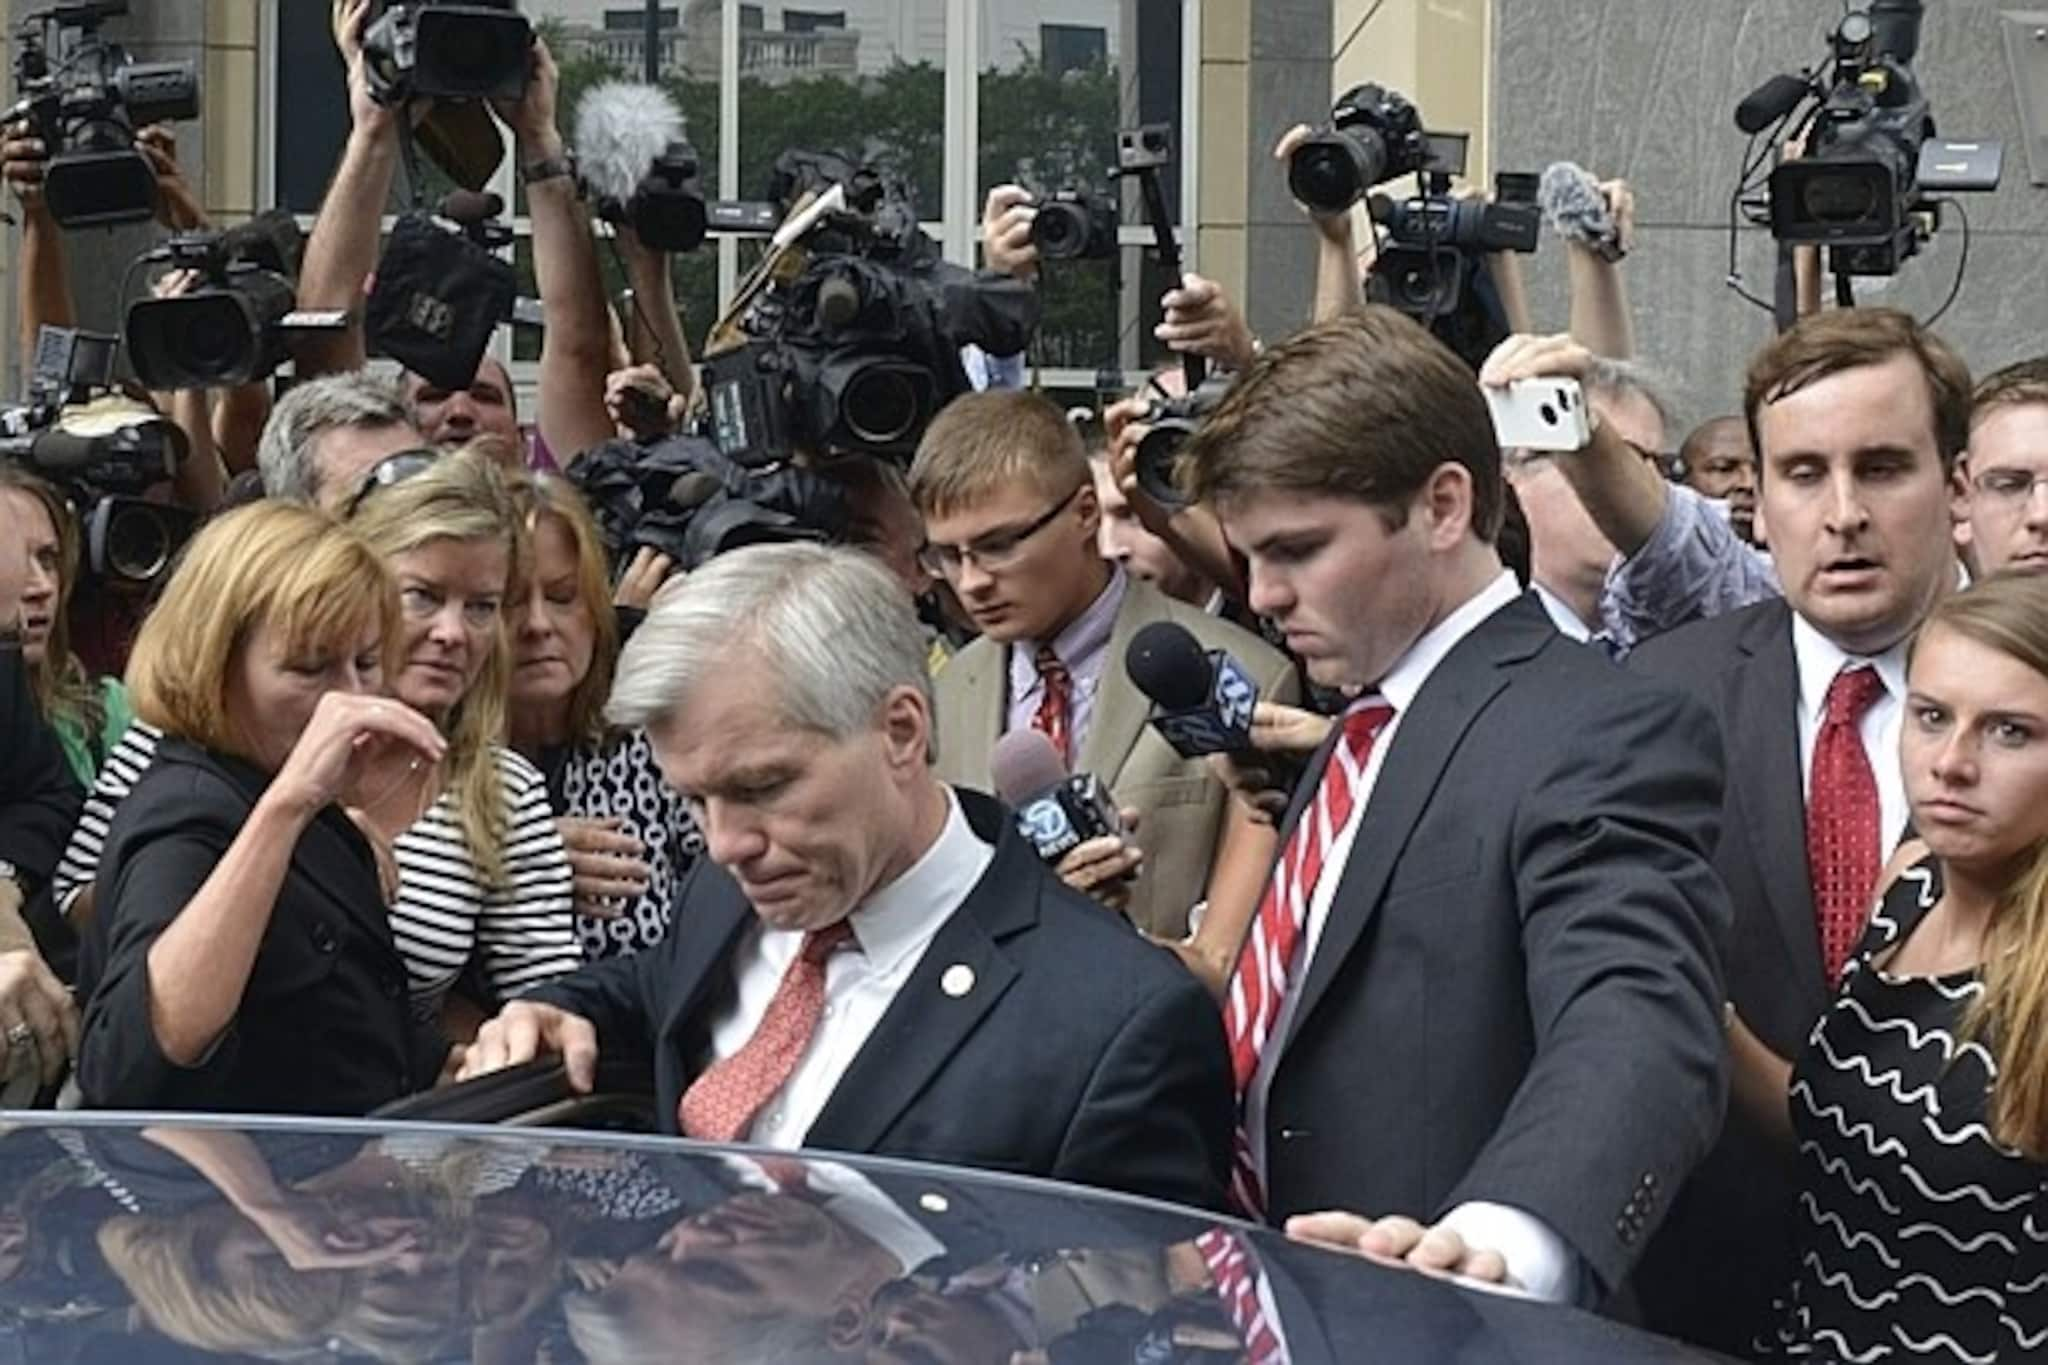 Early Federal Sentencing Recommendation For Mcdonnell At